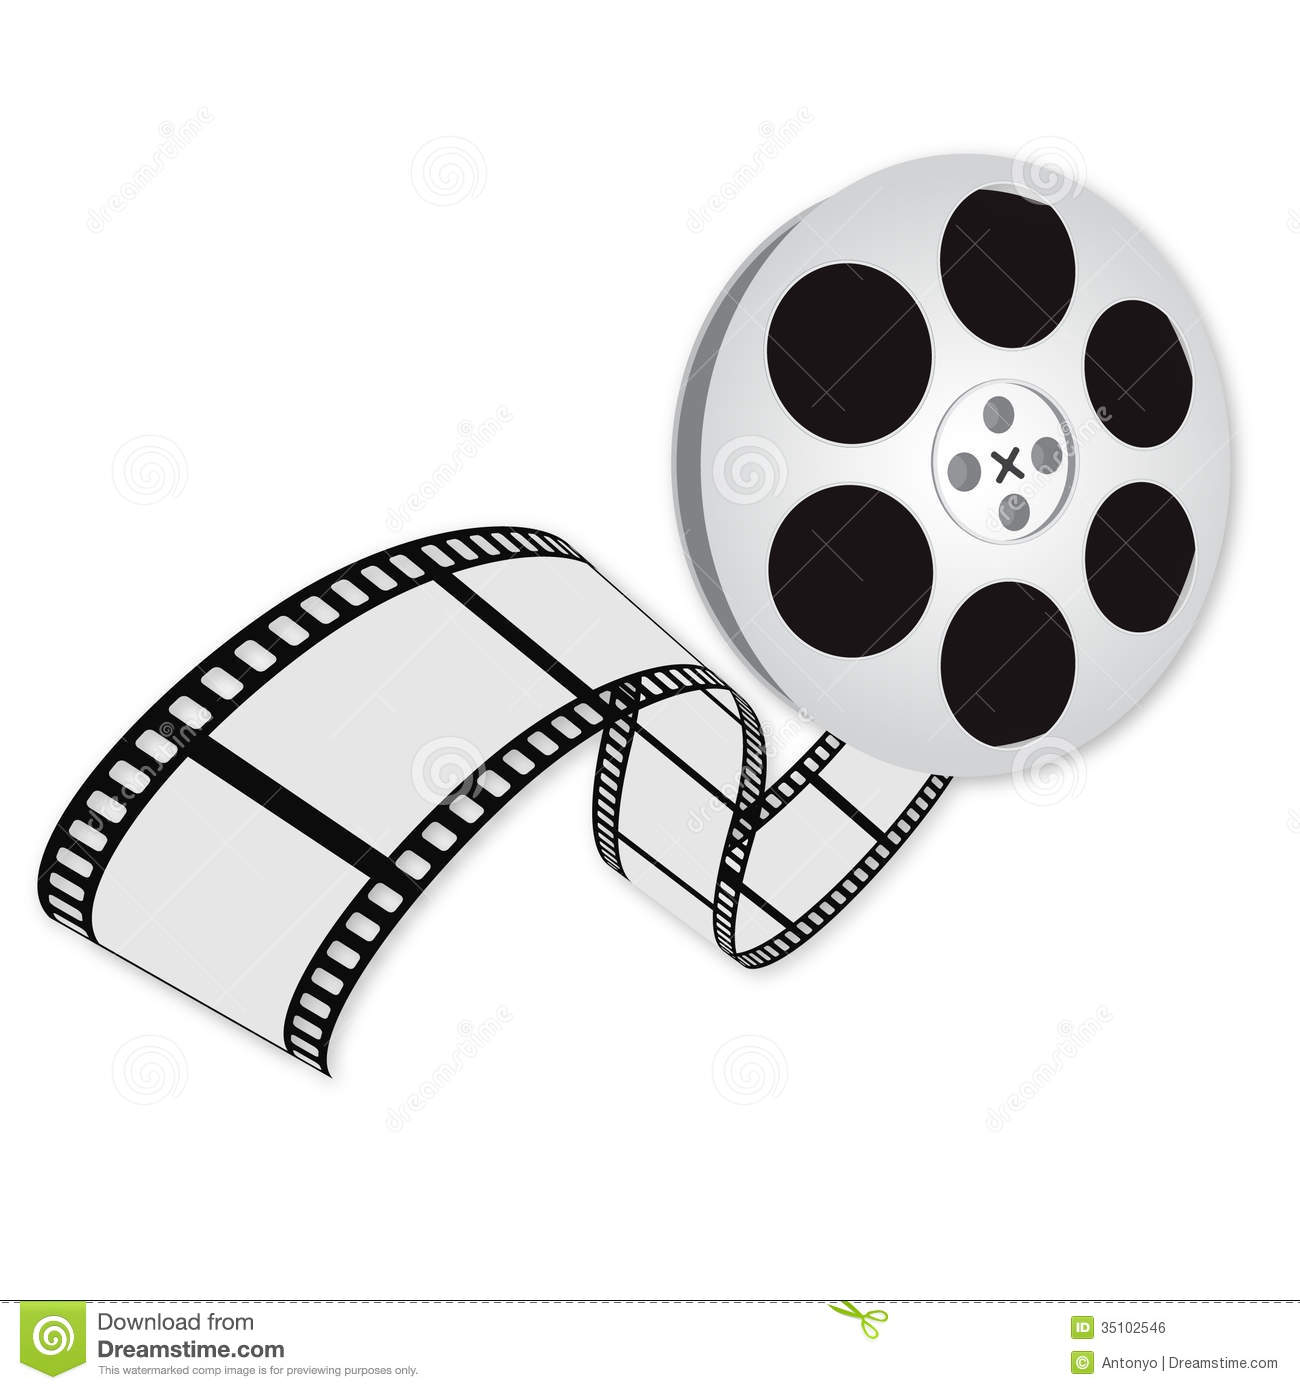 An Inspiring Tale From Africa together with 71125 Academy Award Vector moreover Oscar Academy Award also 71125 Academy Award Vector together with ''on The Town'' Oscar Statue For Best Scoring Of A Musical Picture Popular Musical Starring Gene Lot8143. on gold oscar statue clip art